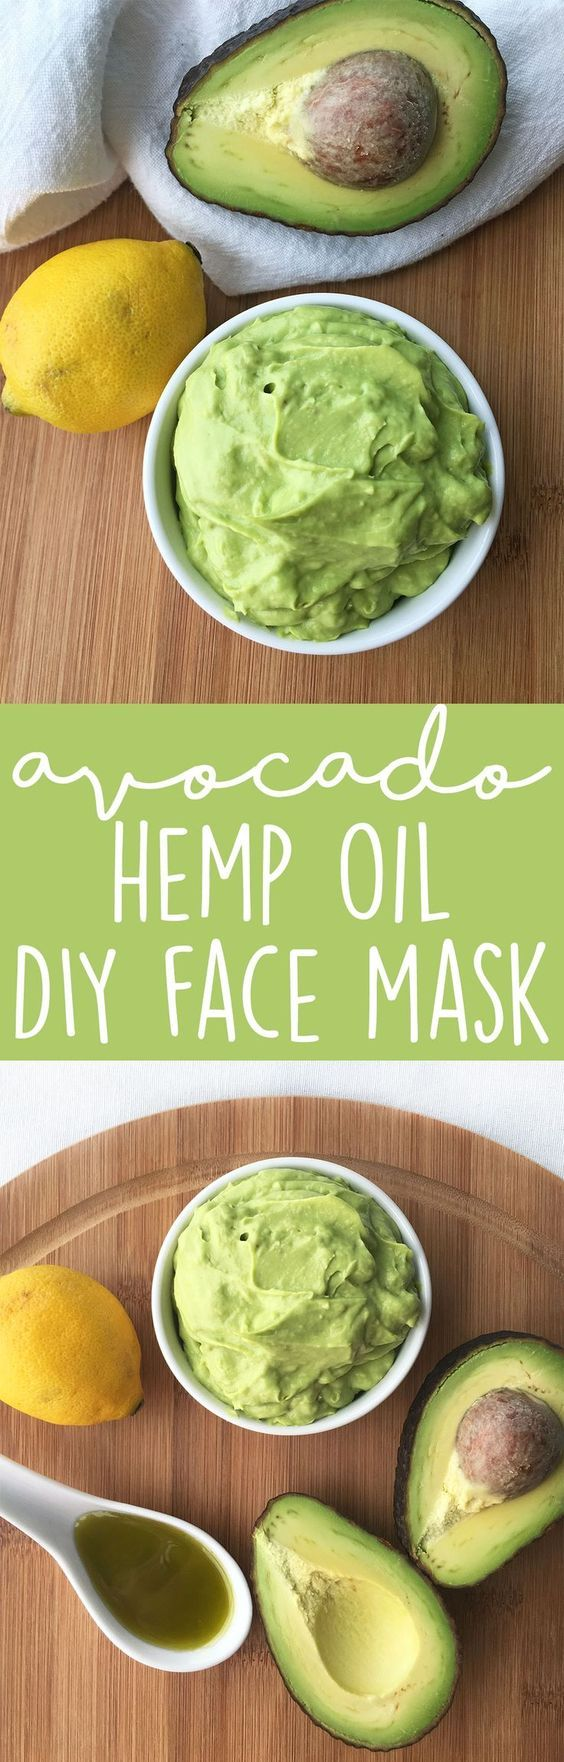 Make a simple, non-toxic face mask by whipping up this avocado hemp oil face mask. 3 ingredients and super simple to make. This face mask is incredibly nourishing and hydrating and will also cleanse your skin. It can be great for dry skin, combination skin, oily skin, and acne prone skin…best of ALL worlds! All skin...Read More